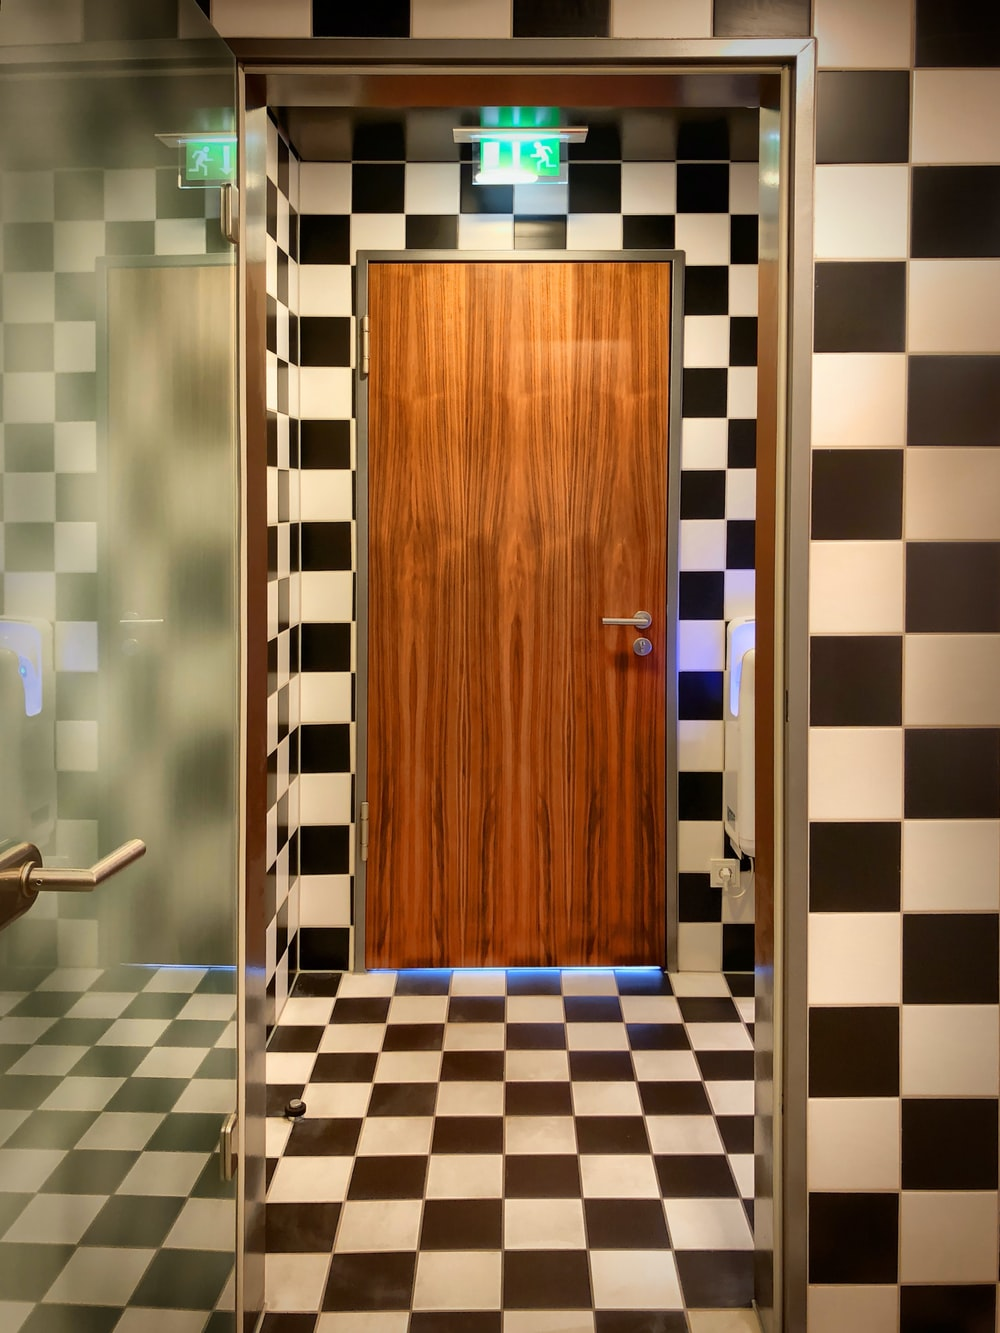 brown wooden door on blue and white checkered floor tiles